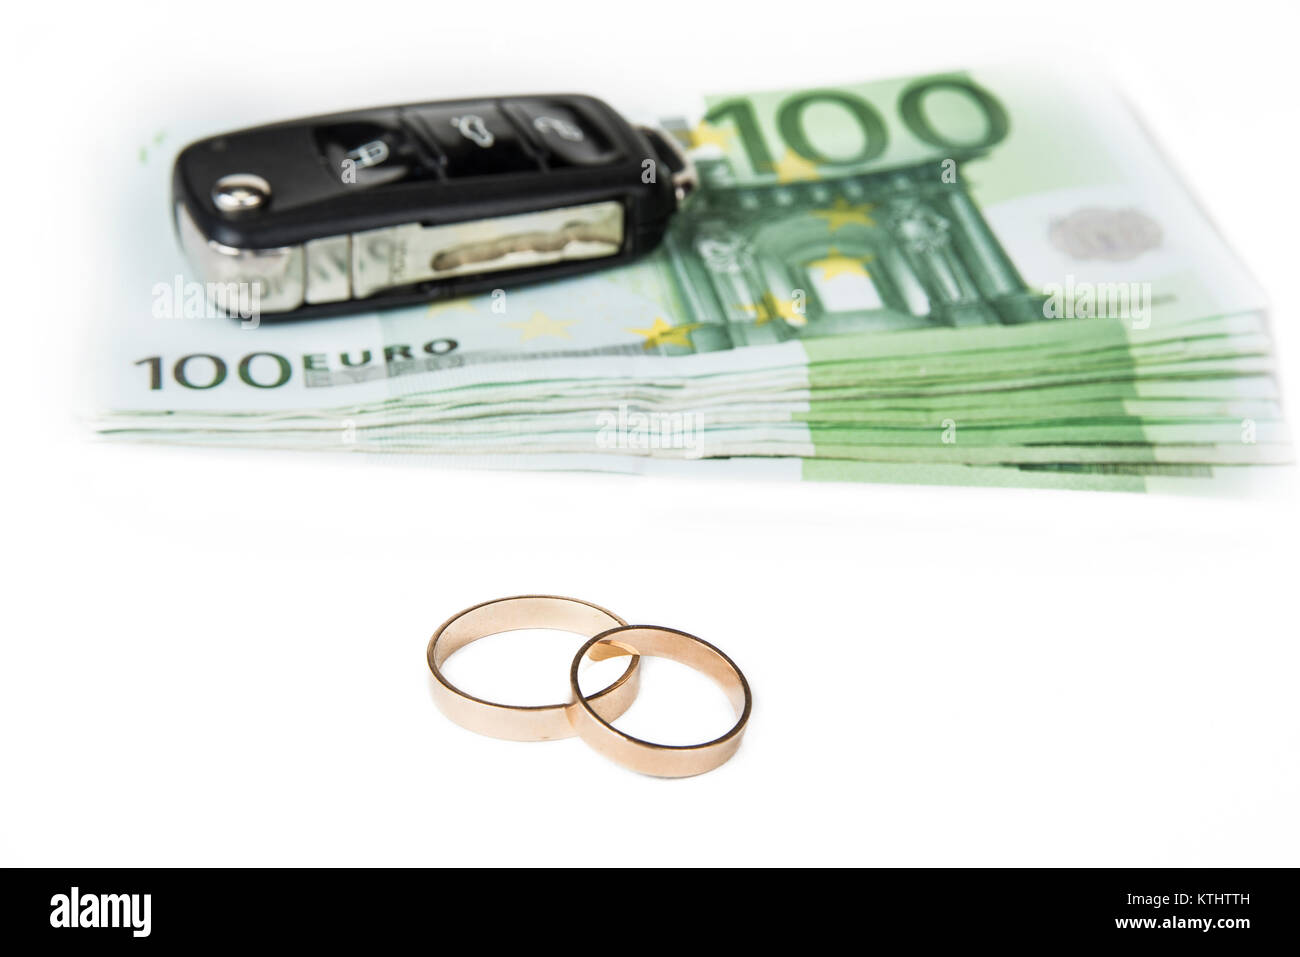 Gold digger concept. Money, car and wedding rings. - Stock Image